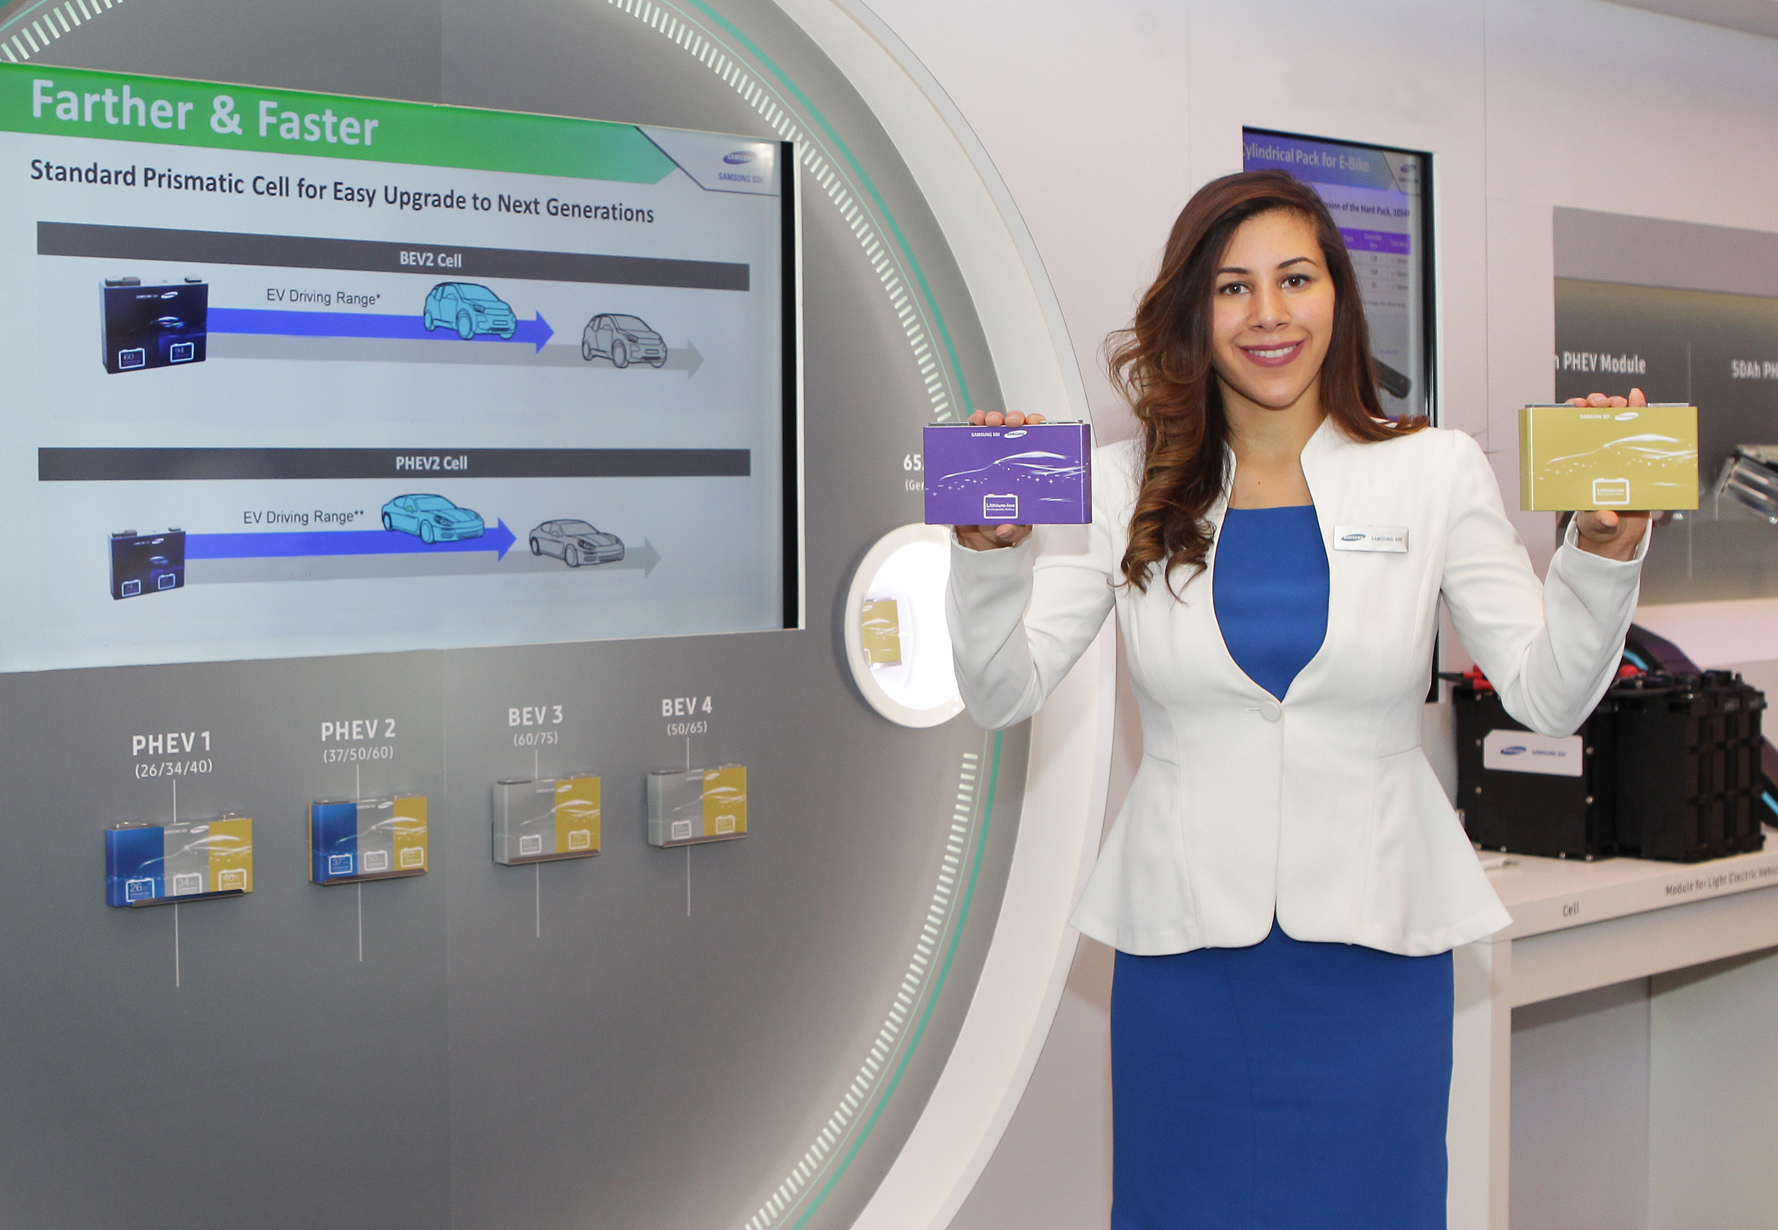 """Samsung SDI presented an Innovative Next Generation Battery with Fast Charging Capability and High Energy Density that enables Electric Vehicles (EV) to Drive 600km at the North American International Auto Show (NAIAS) 2017 on the 9th of January, 2017 in COBO Center, Detroit. It introduced in its customer exhibition a """"high-energy density battery cell of the next generation for a driving range of up to 600km that can fast charge EVs in 20 minutes"""" as well as an """"integrated battery module"""" concept with a 10% decrease in component units and weight compared to the currently produced models. (Photo: Business Wire)"""